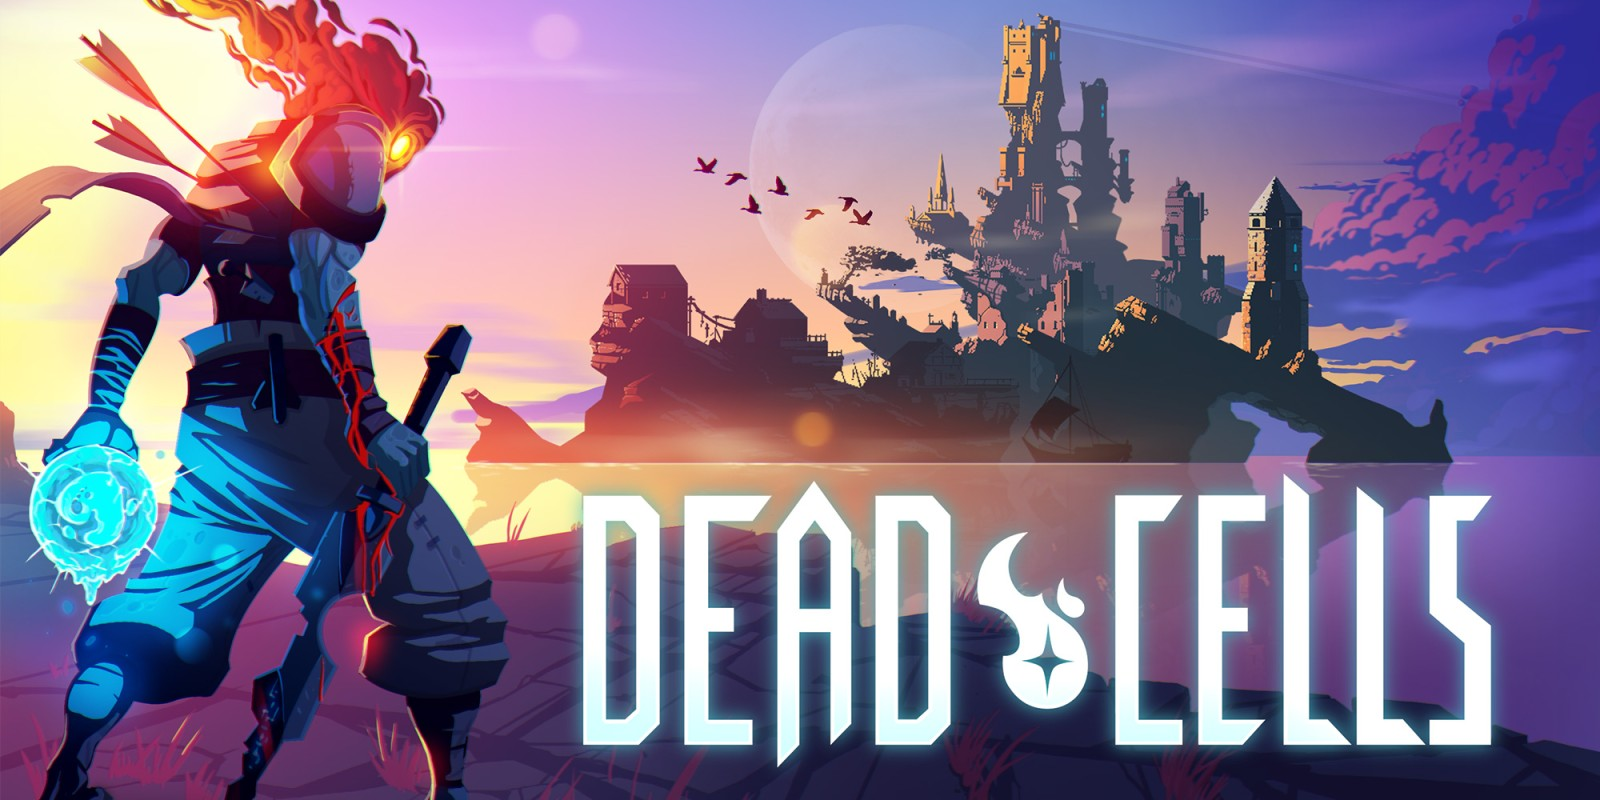 H2x1_NSwitchDS_DeadCells_image1600w.jpg